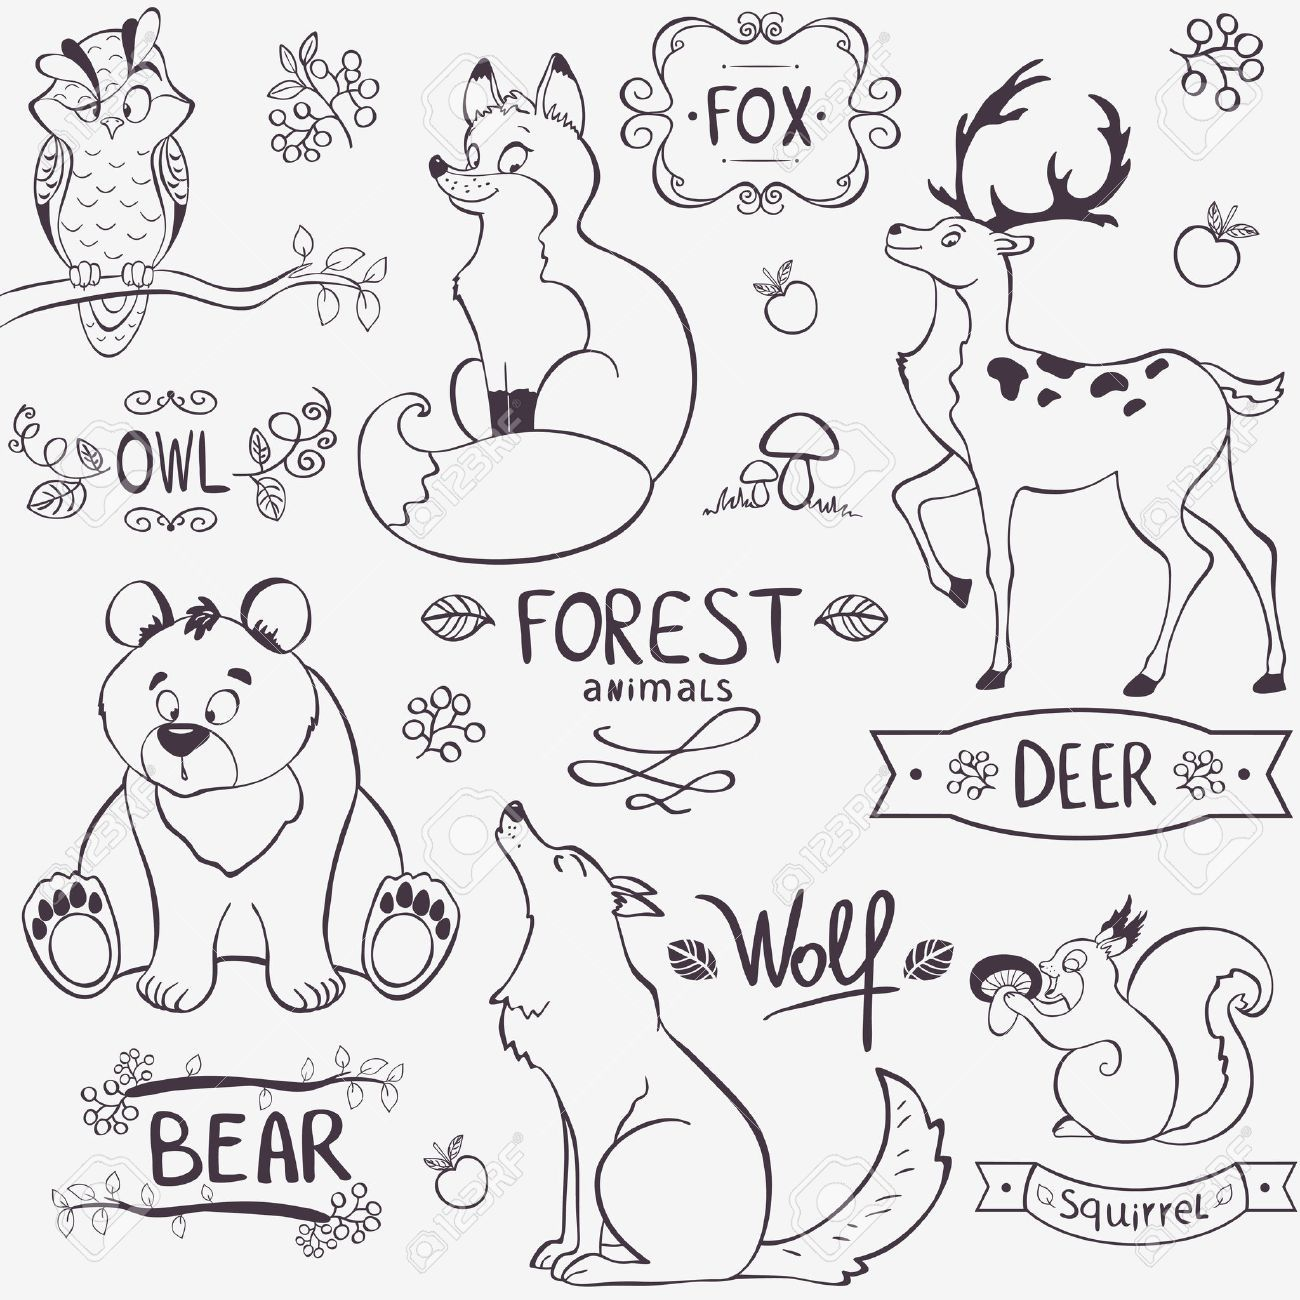 Illustration Set Of Cute Animals Of The Forest With Design Names Royalty Free Cliparts Vectors Forest Animals Illustration Animal Drawings Animal Silhouette